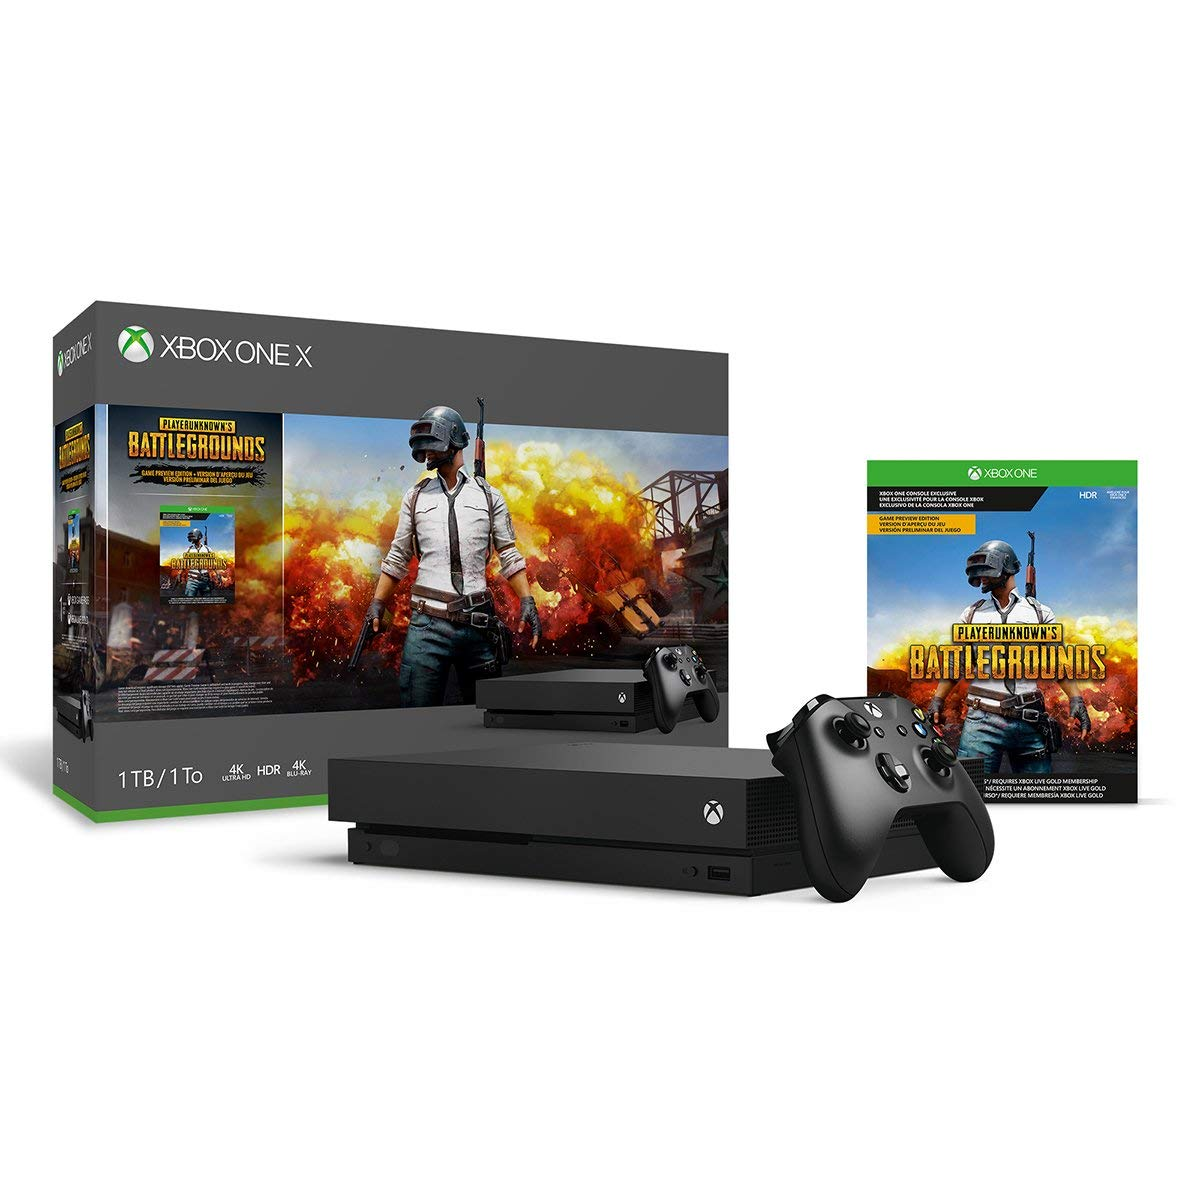 Xbox One X 1TB Special Free Shipping Cheap Bargain Gift price for a limited time Console PLAYERUNKNOWN'S - Bund BATTLEGROUNDS